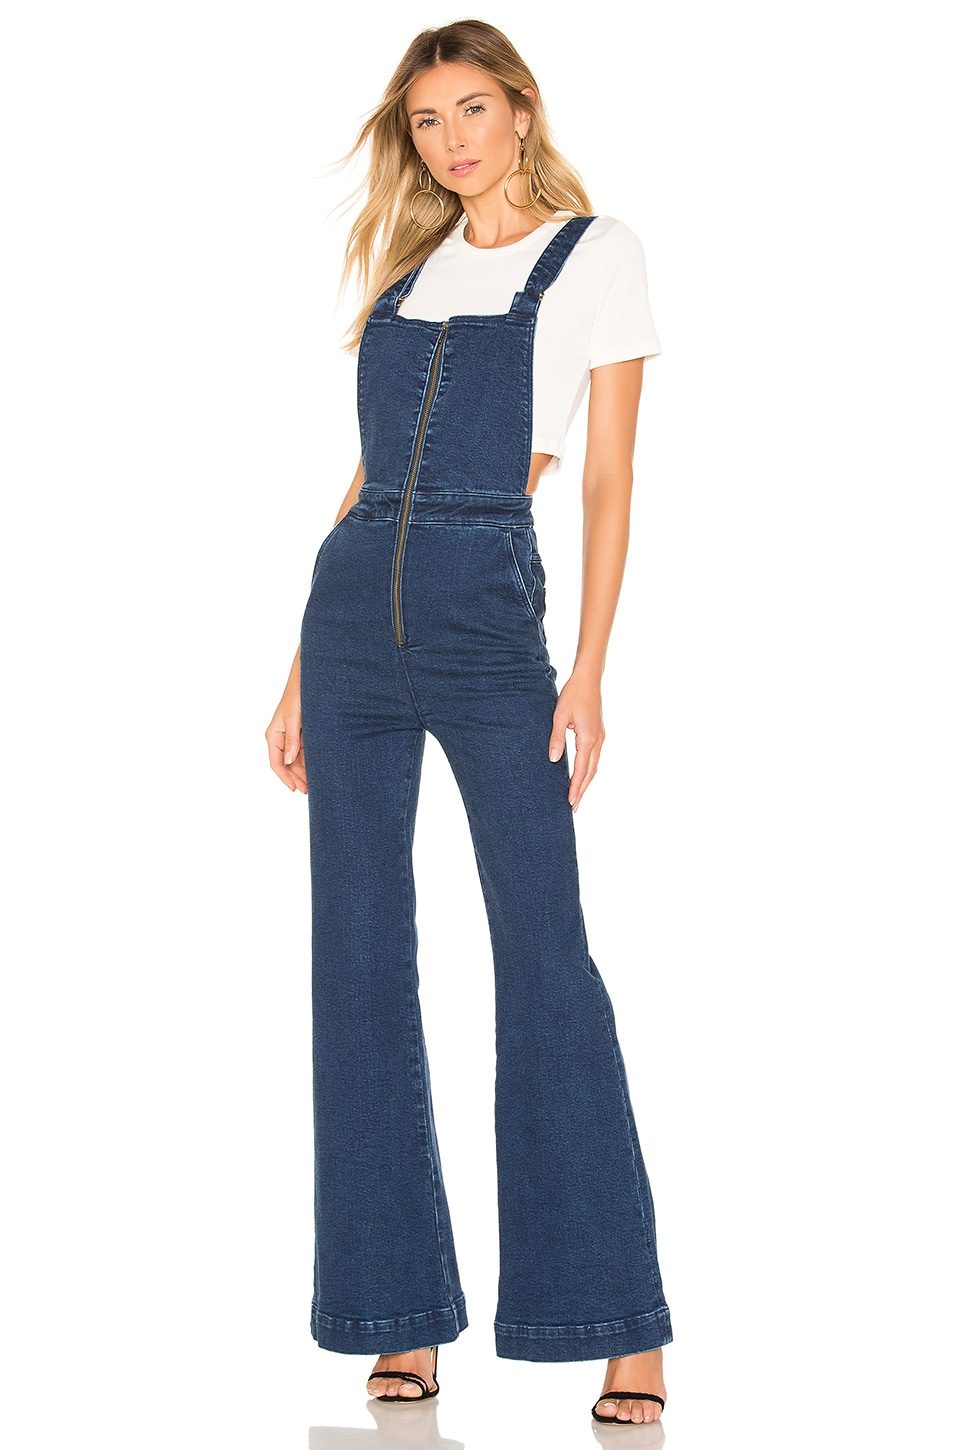 ROLLA'S Eastcoast Flare Overall in French Blue